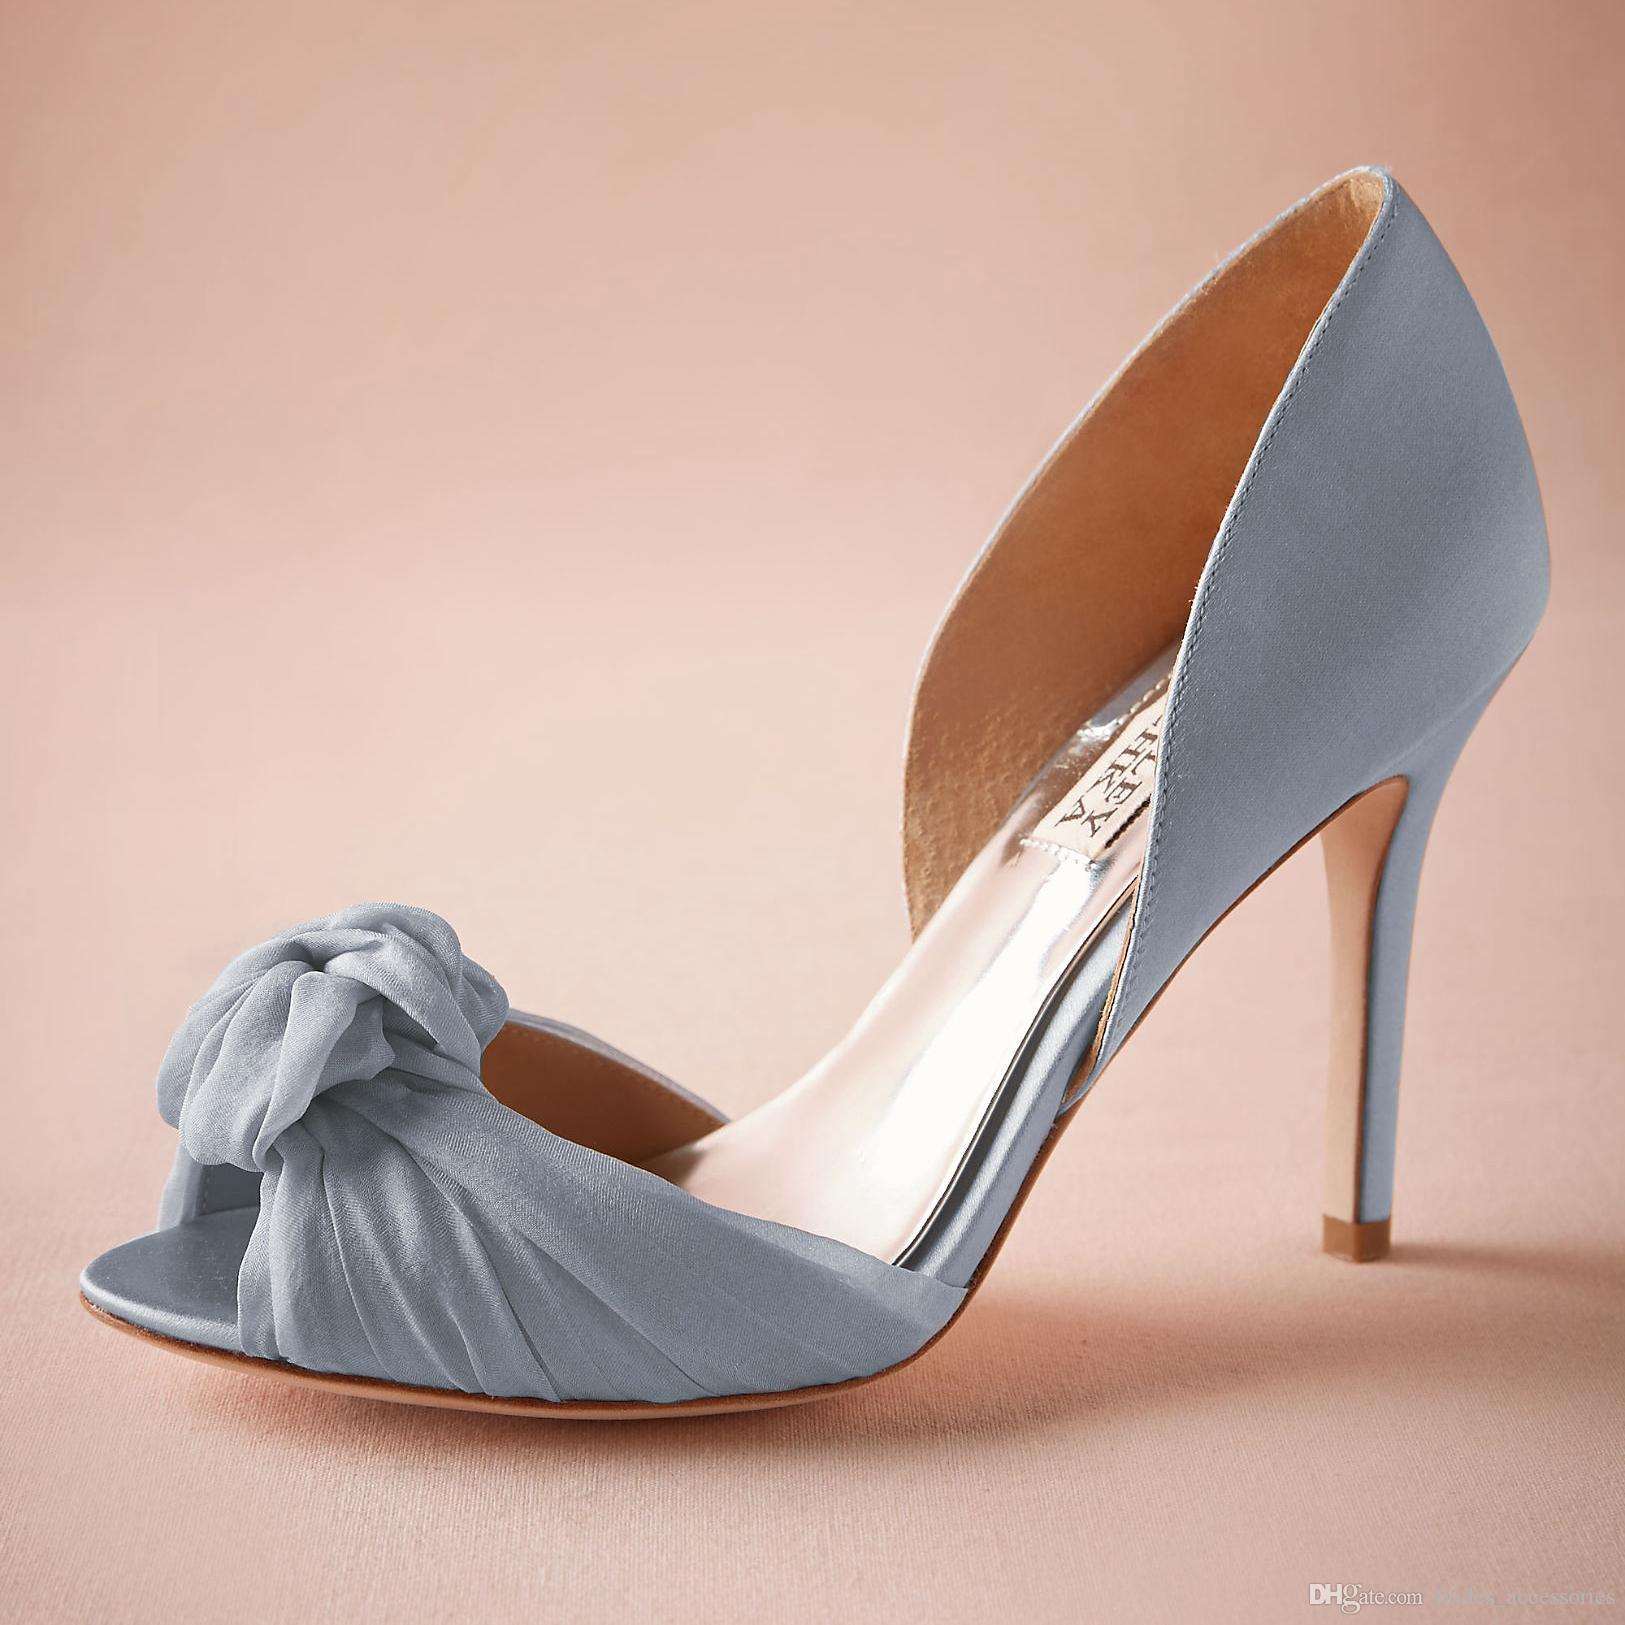 Blue Satin Wedding Shoes 3.5 Satin Wrapped Heel Sandal Tulle Twist Details  Women Sandal Glamour Two Piece Pump High Heels Made To Order Cream Wedding  Shoes ...